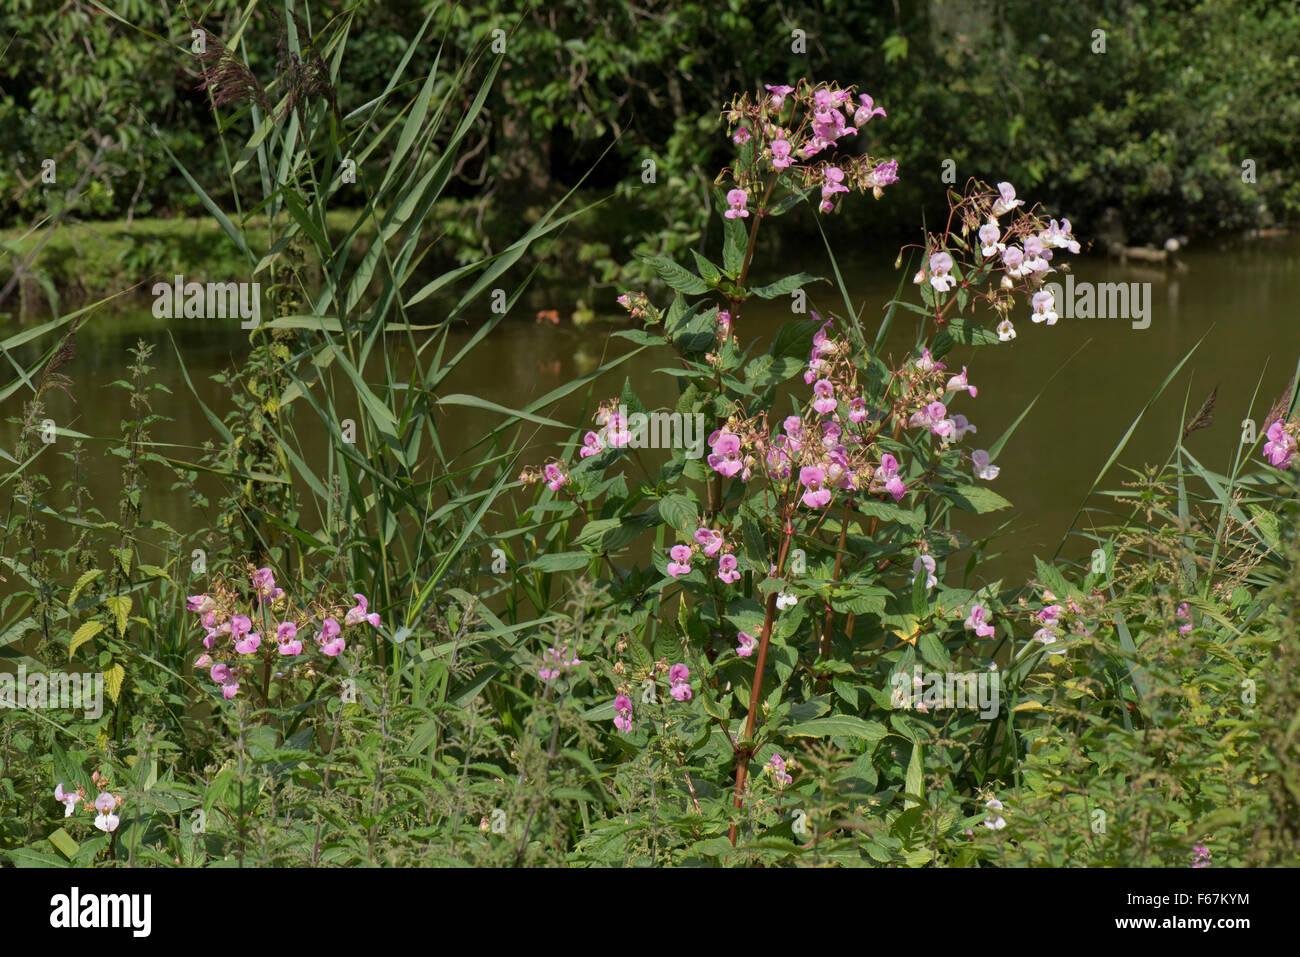 Himalayan balsam, Impatiens glandulifera, flowering in other veghetation on the bank of the Kennet and Avon Canal, - Stock Image